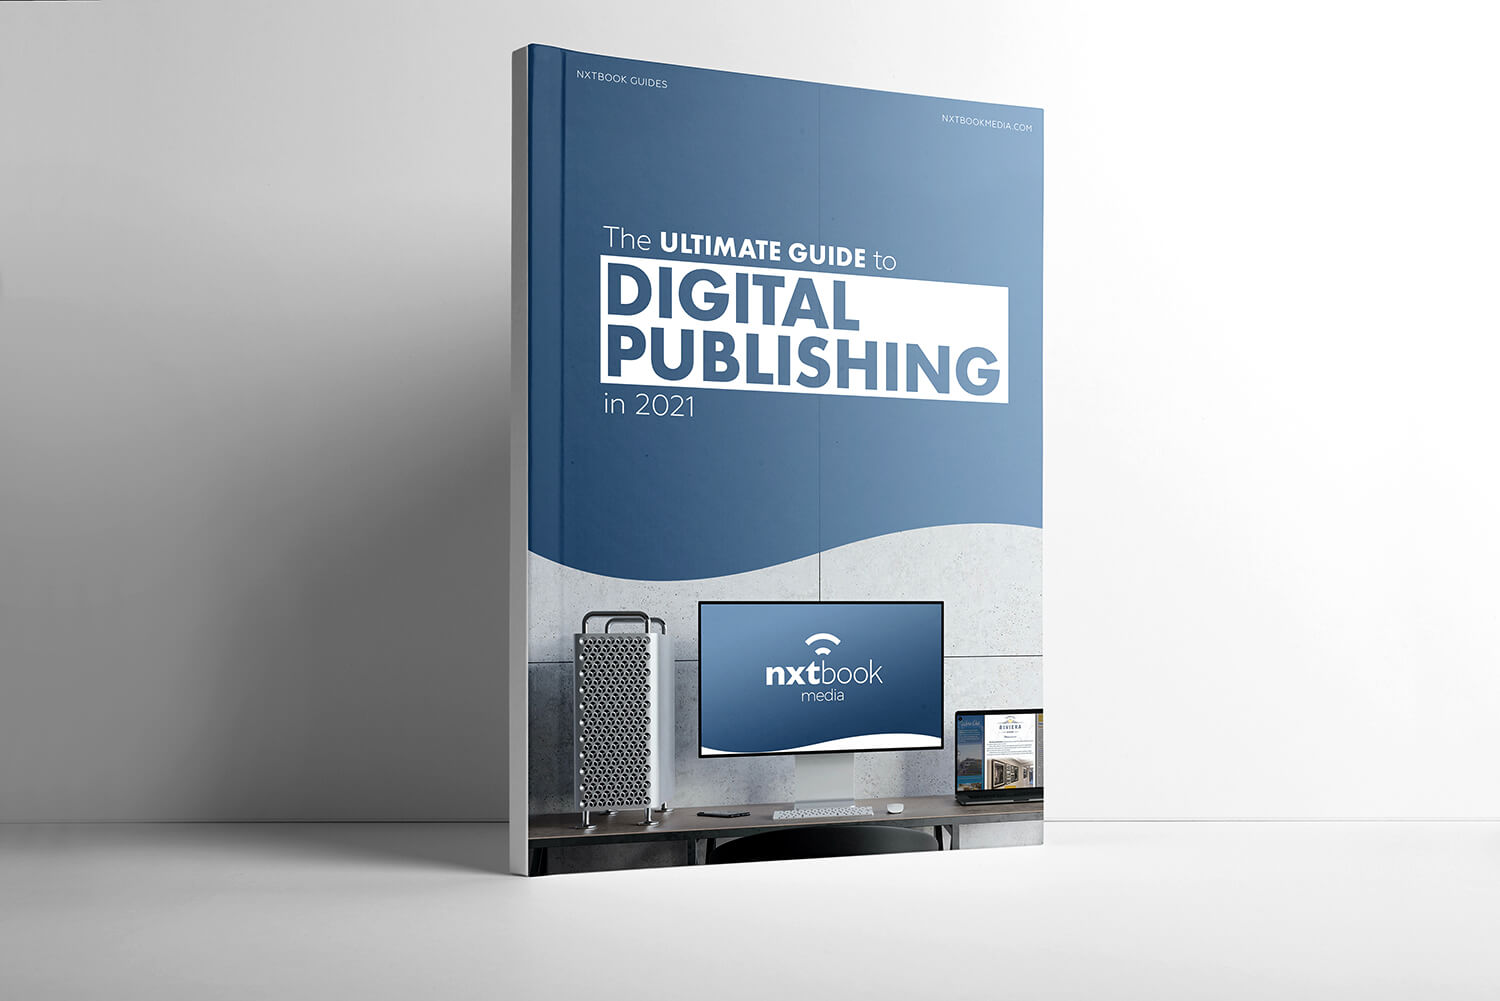 The Ultimate Guide to Digital Publishing in 2021